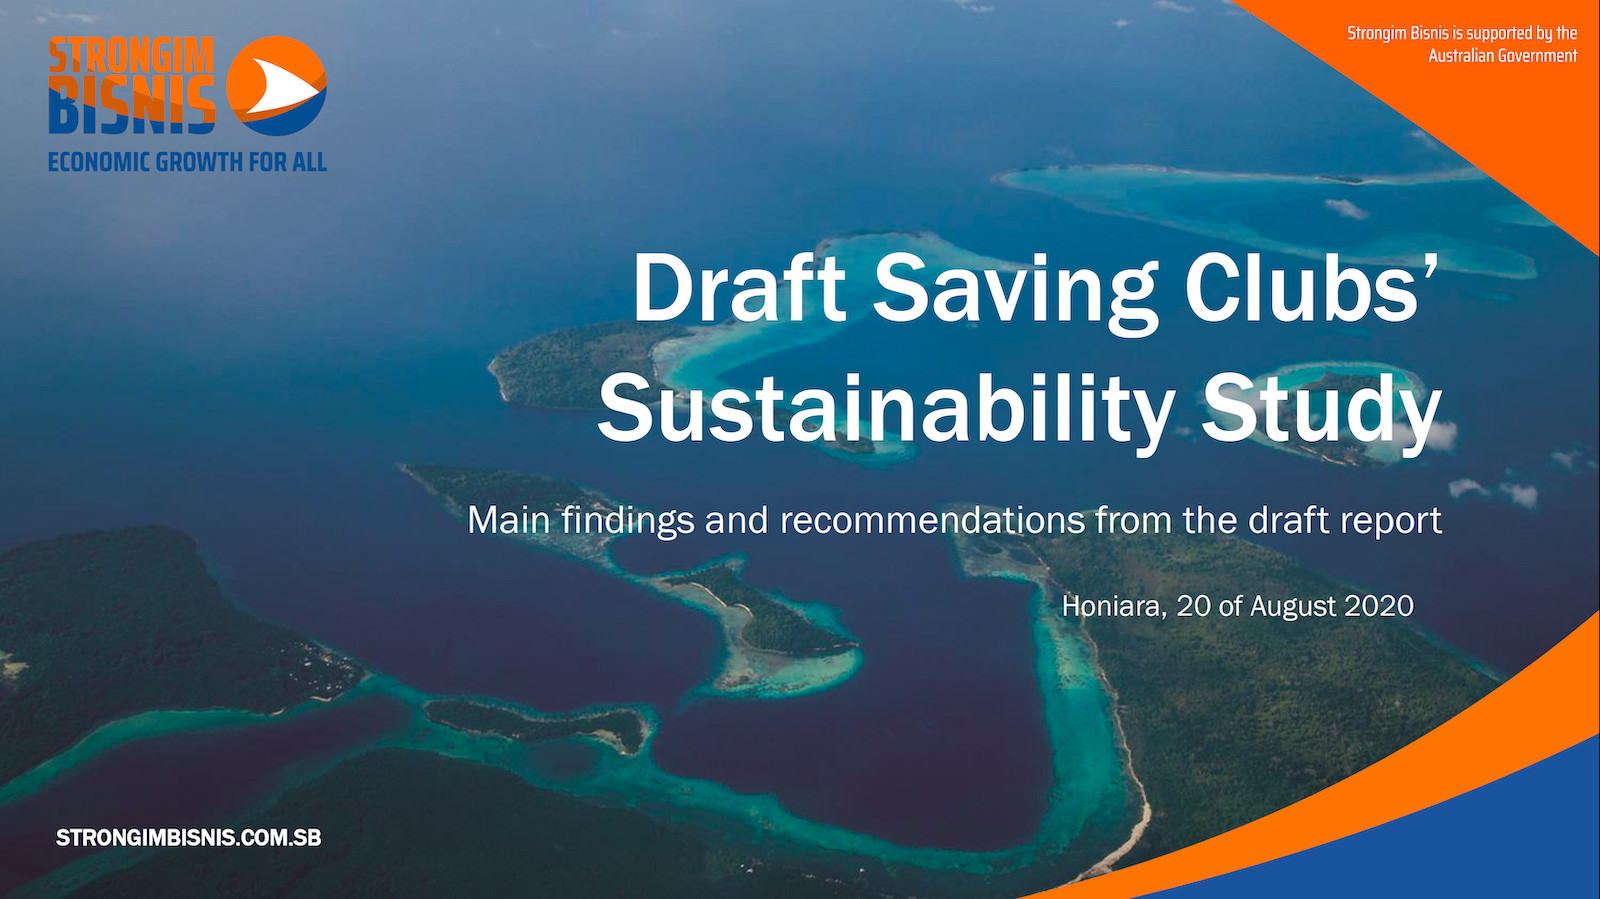 Savings Clubs and Sustainability: Draft Findings